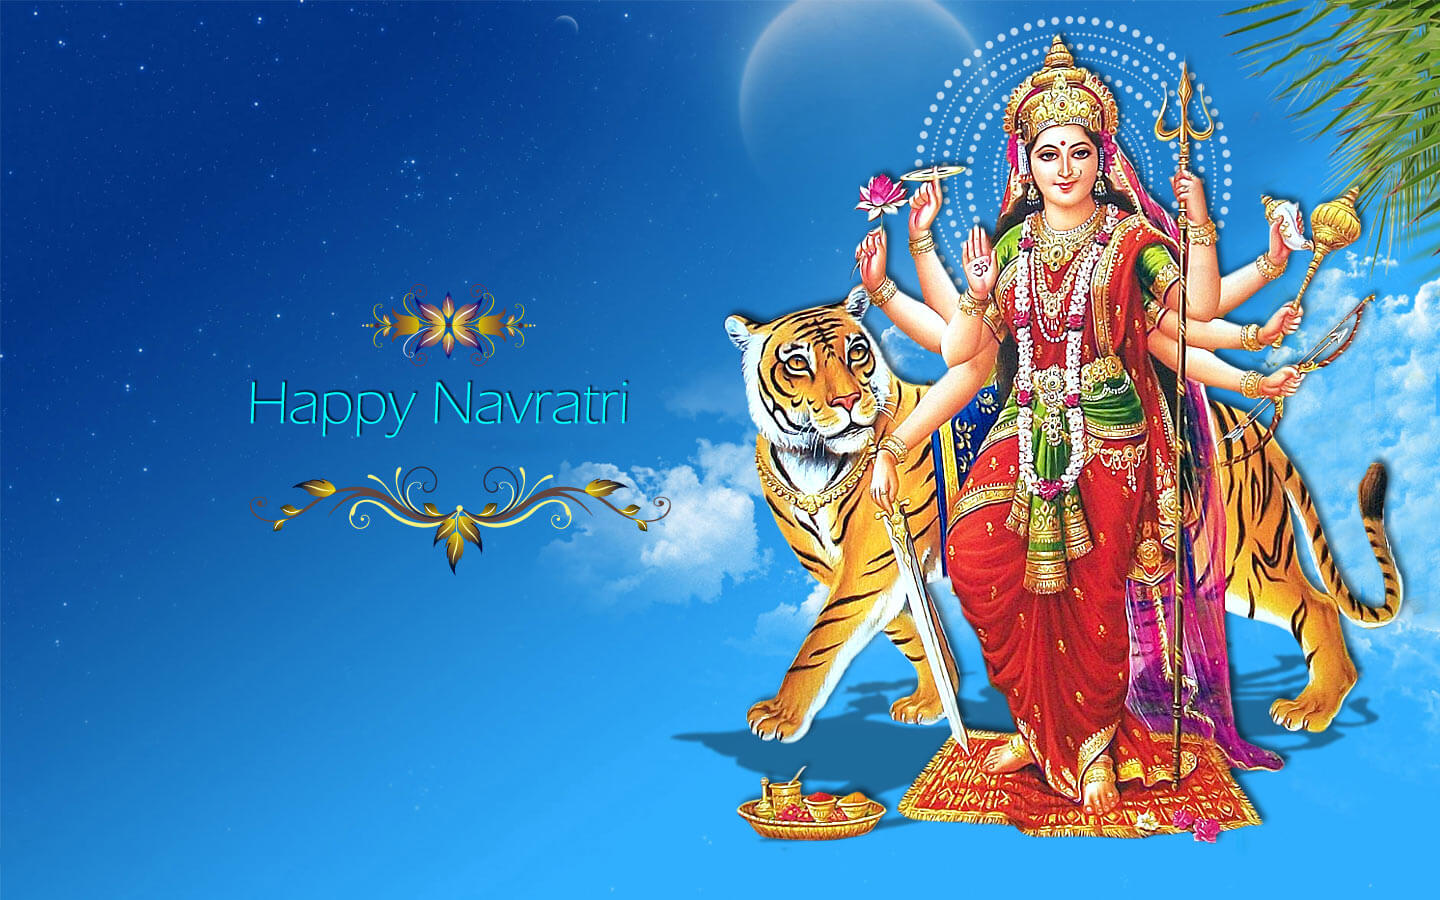 happy navratri 2017 HD wallpaper durga mata image